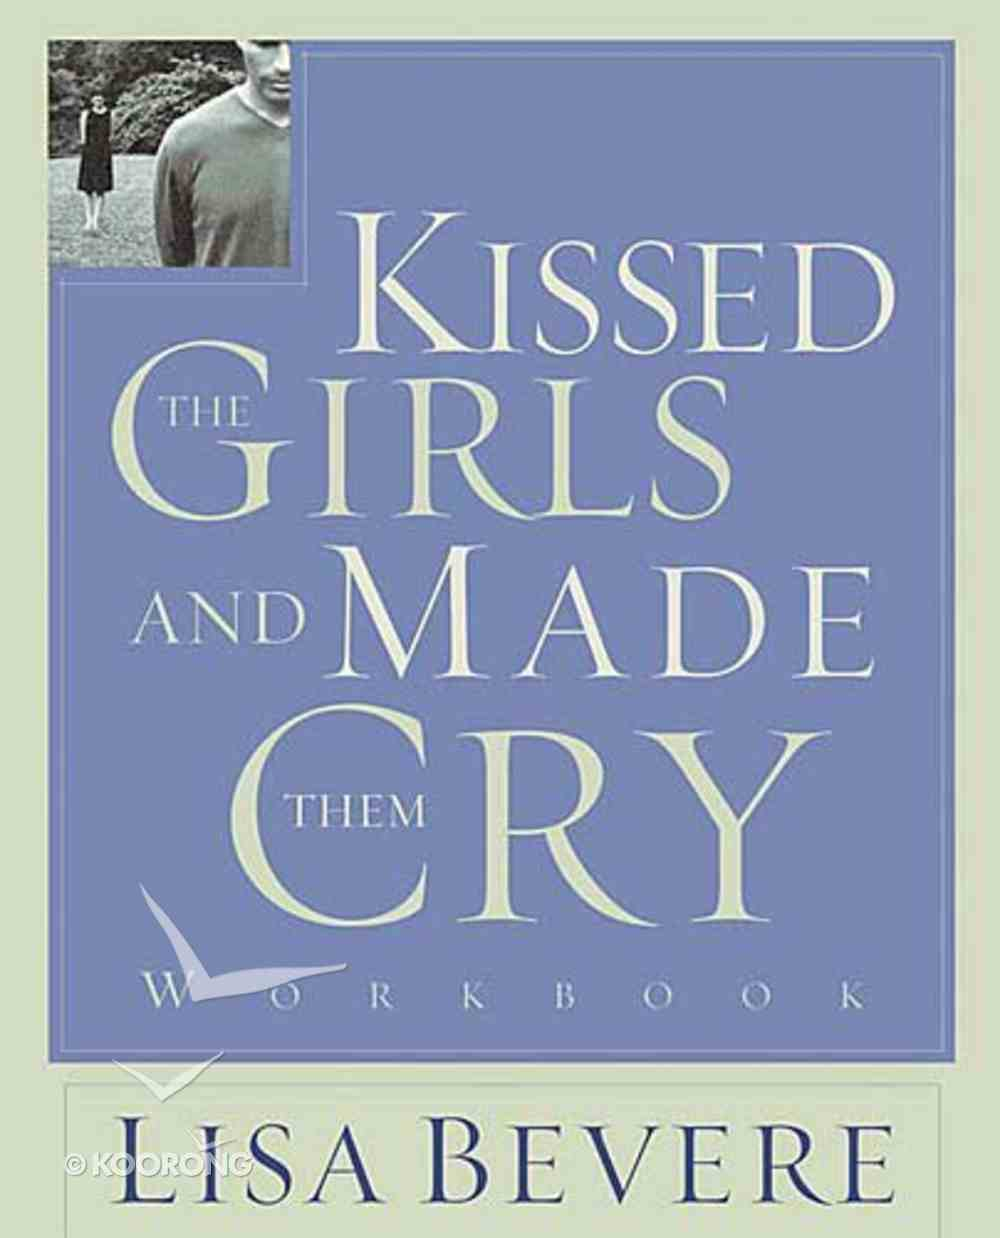 Kissed the Girls and Made Them Cry (Companion Workbook) Paperback